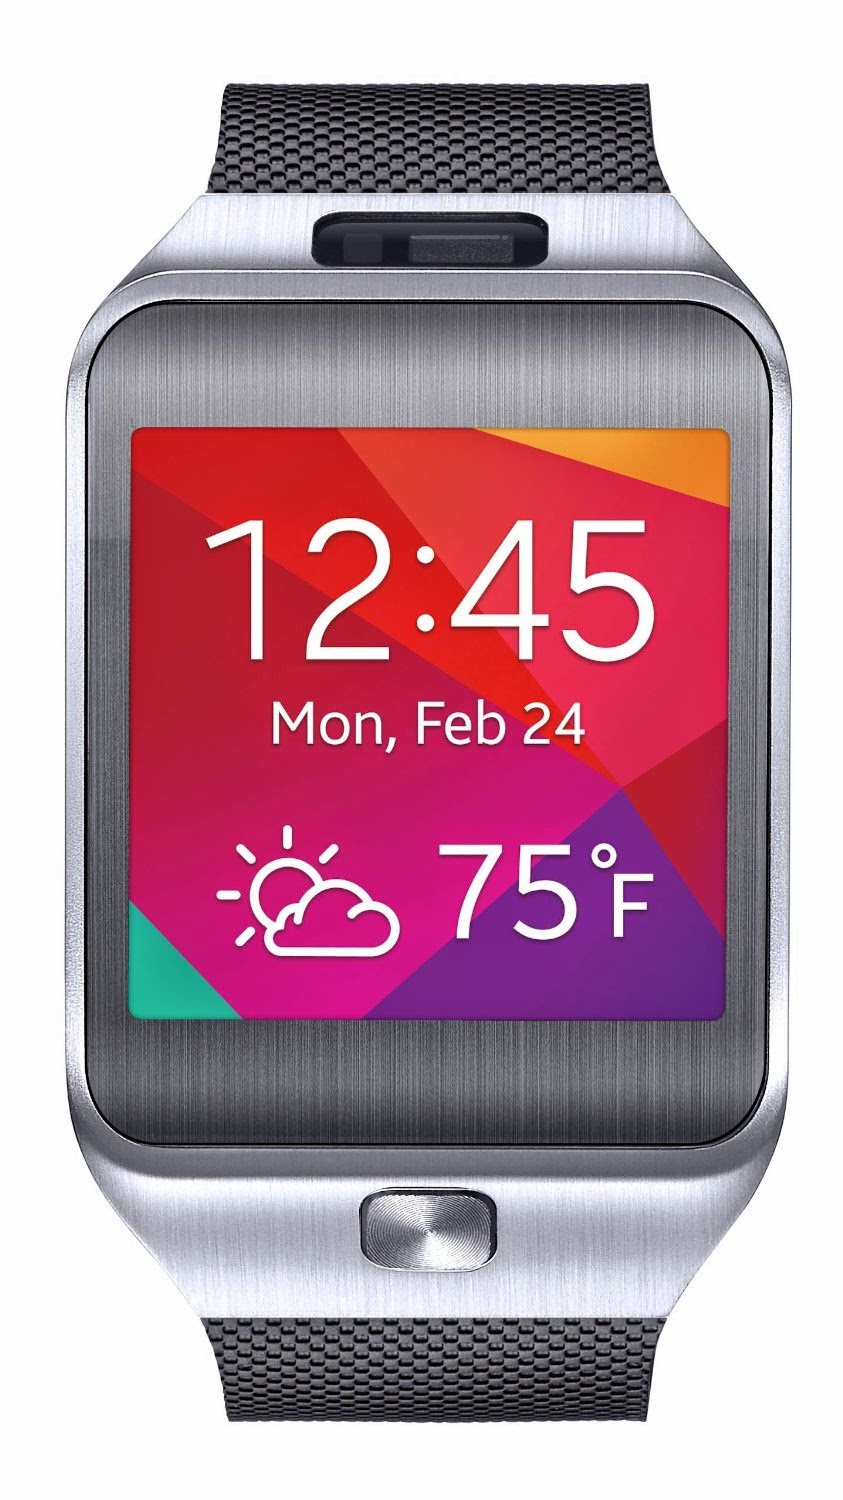 Buy Samsung Galaxy S5 Super Amoled Touchsreen 16m Colors Quad Core 25 Ghz Processor 2g Ram Gear 2 Smartwatch Features